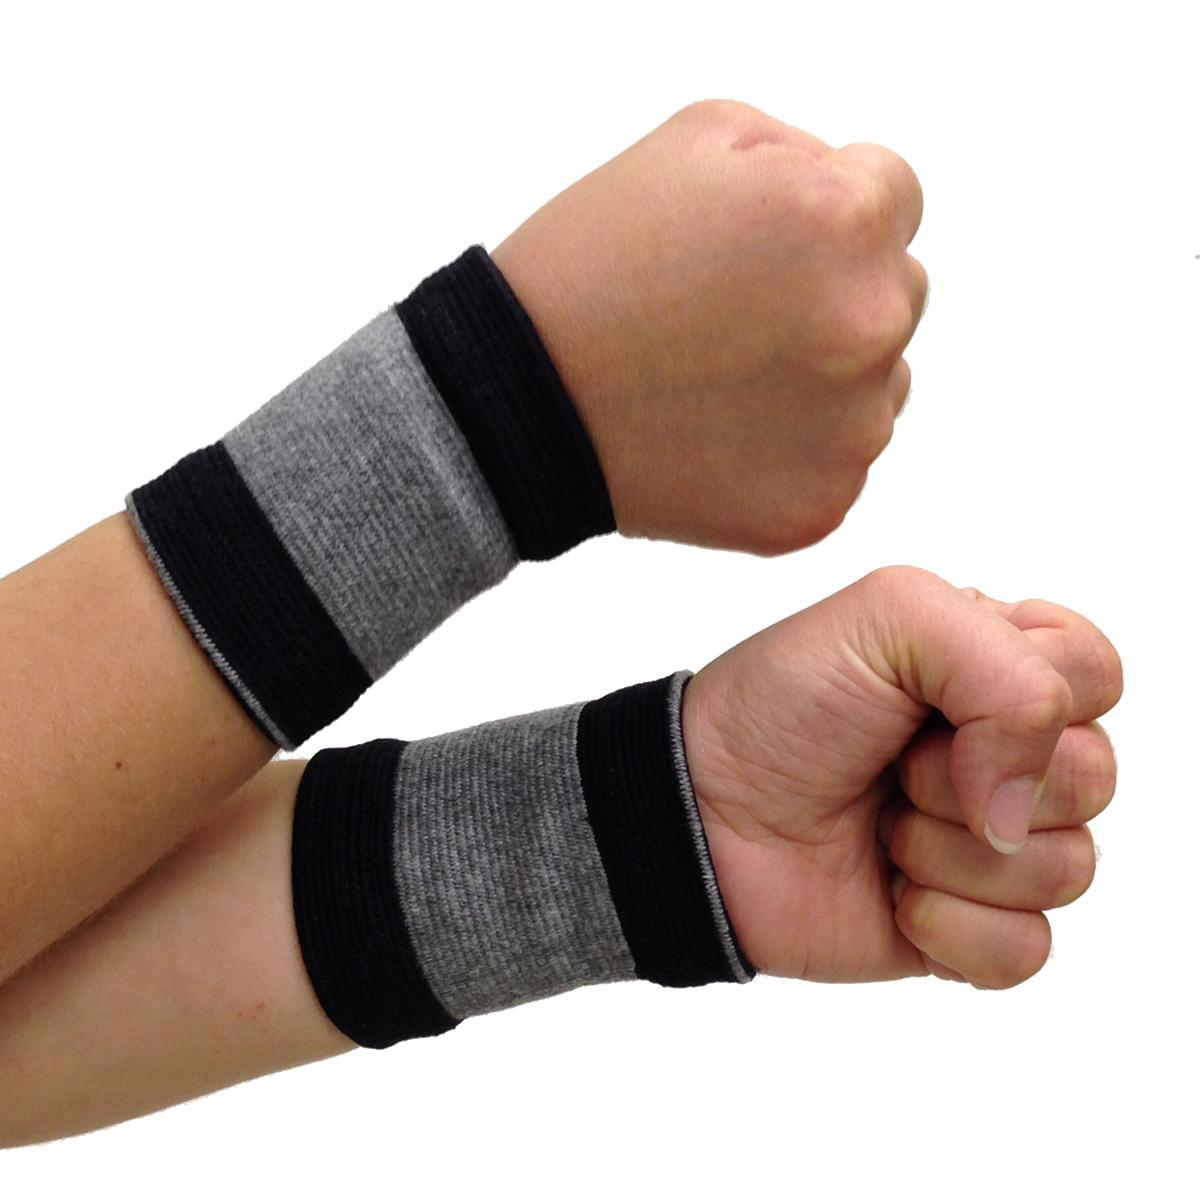 Self-Warming Wrist Bands (1 Pair - 2 Bands) | Bamboo Charcoal Technology